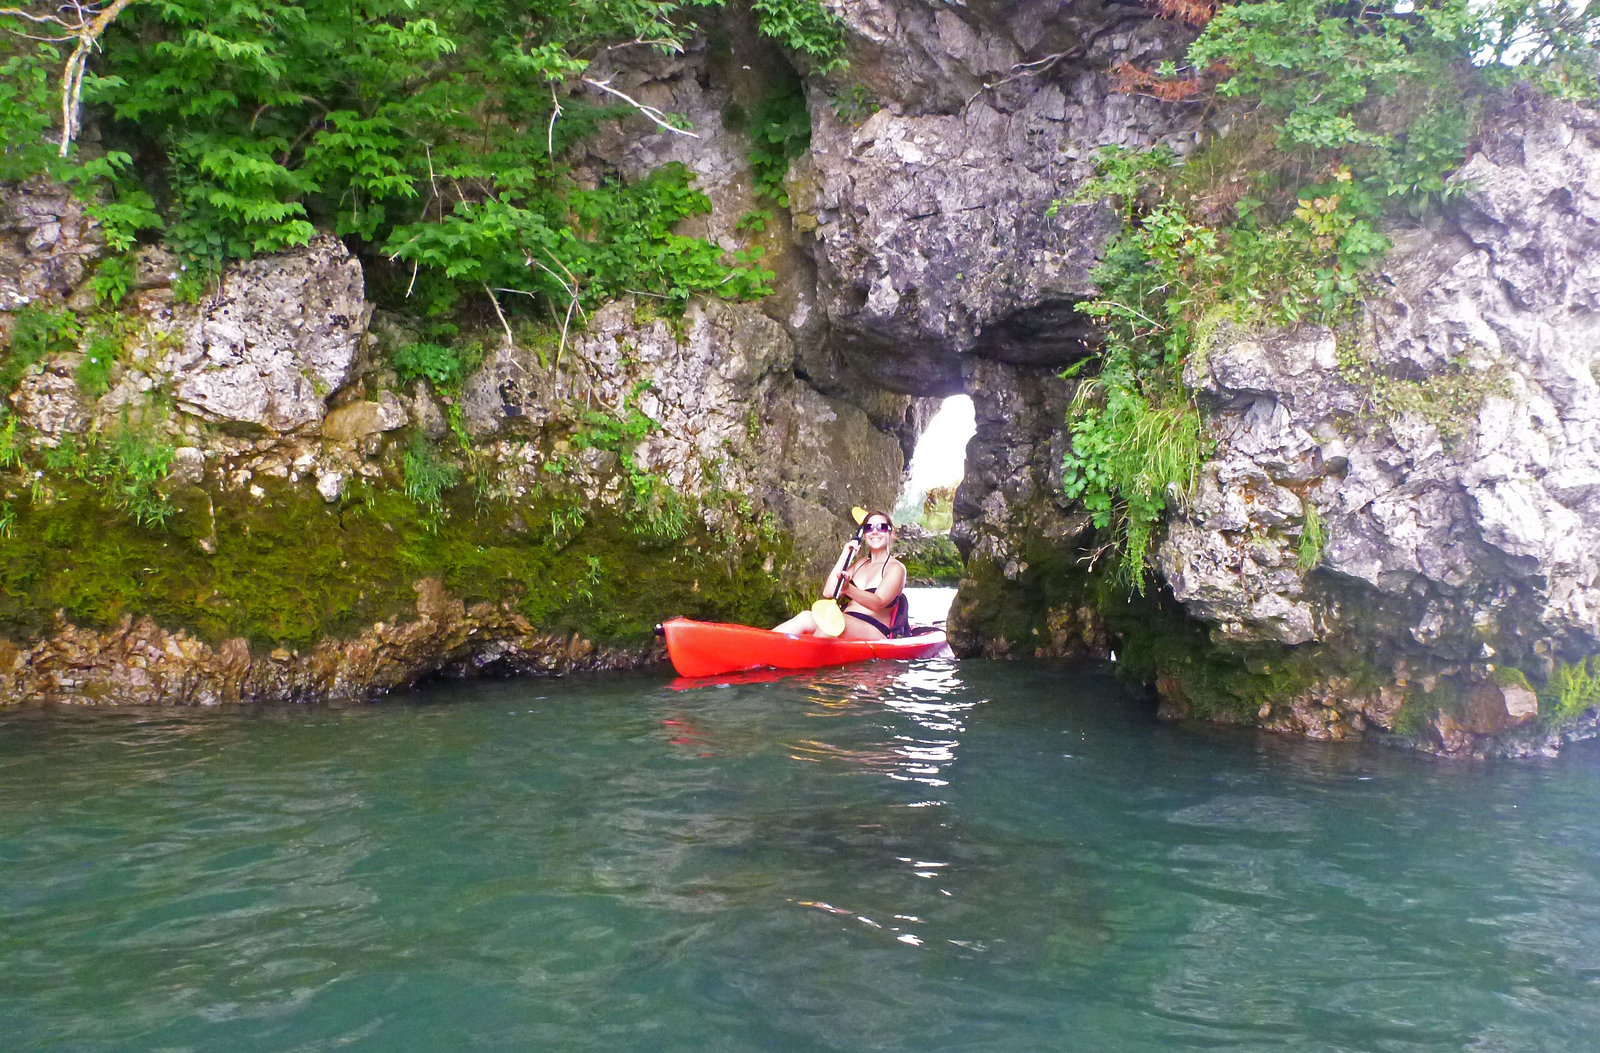 Kayaking to Gibraltar Island - Put in Bay, Ohio